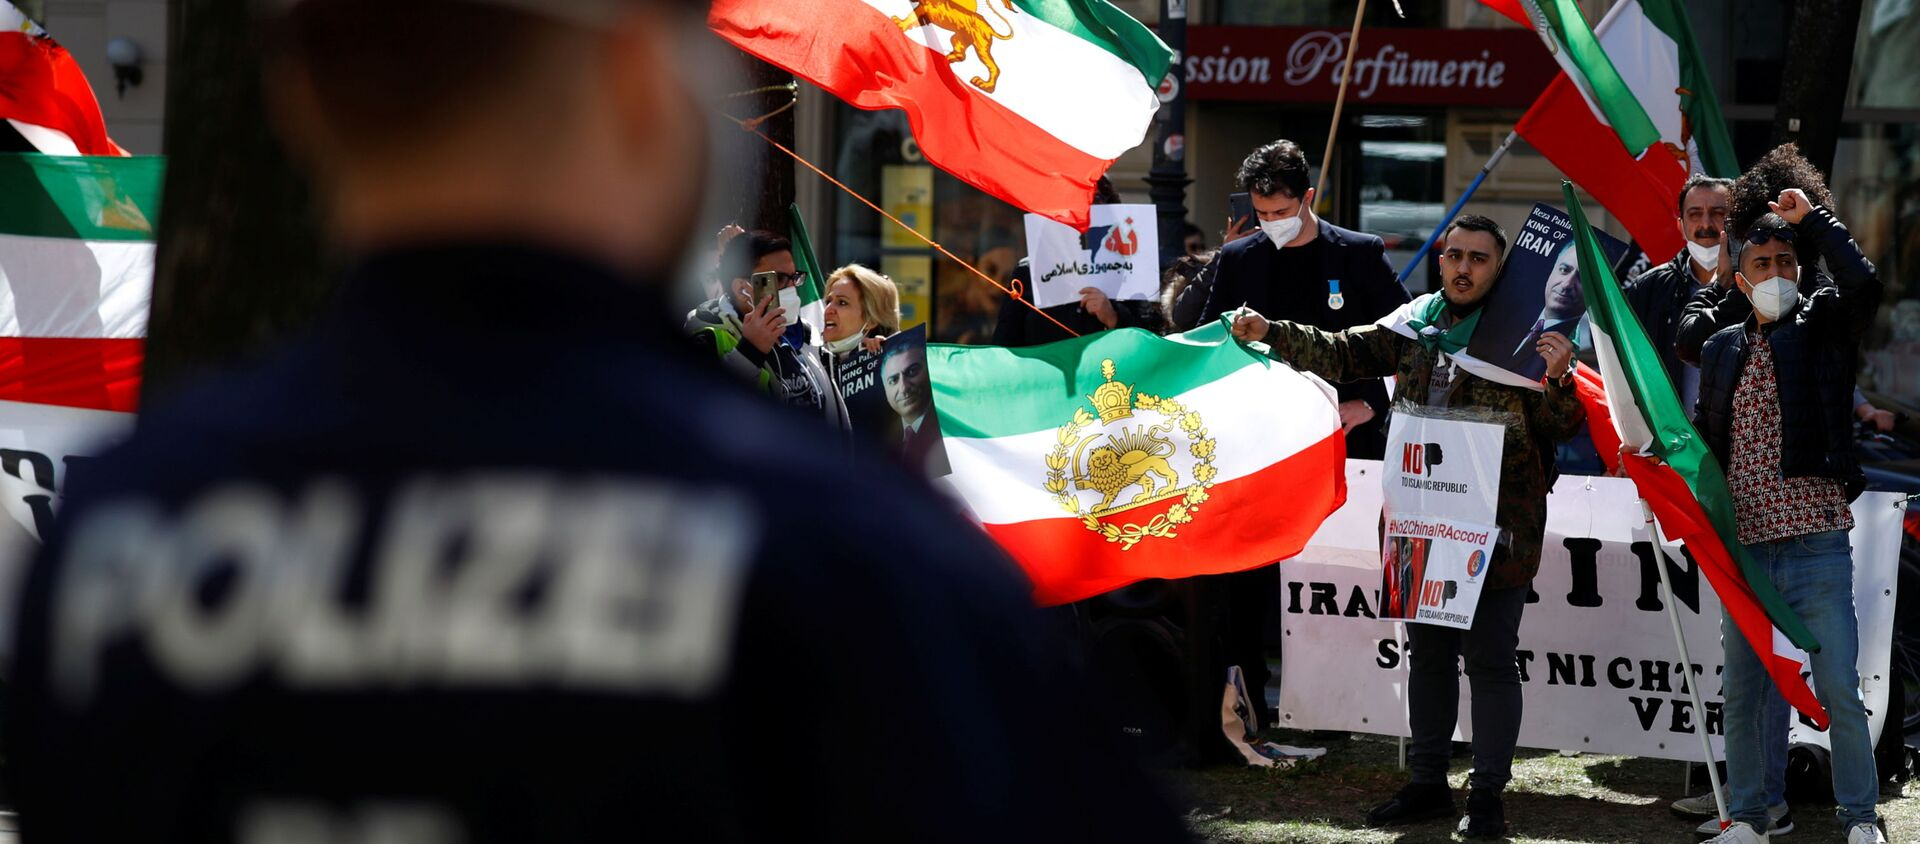 An Iranian opposition group protests outside a hotel, during a meeting of the JCPOA Joint Commission, in Vienna, Austria, April 9, 2021.  - Sputnik International, 1920, 07.05.2021